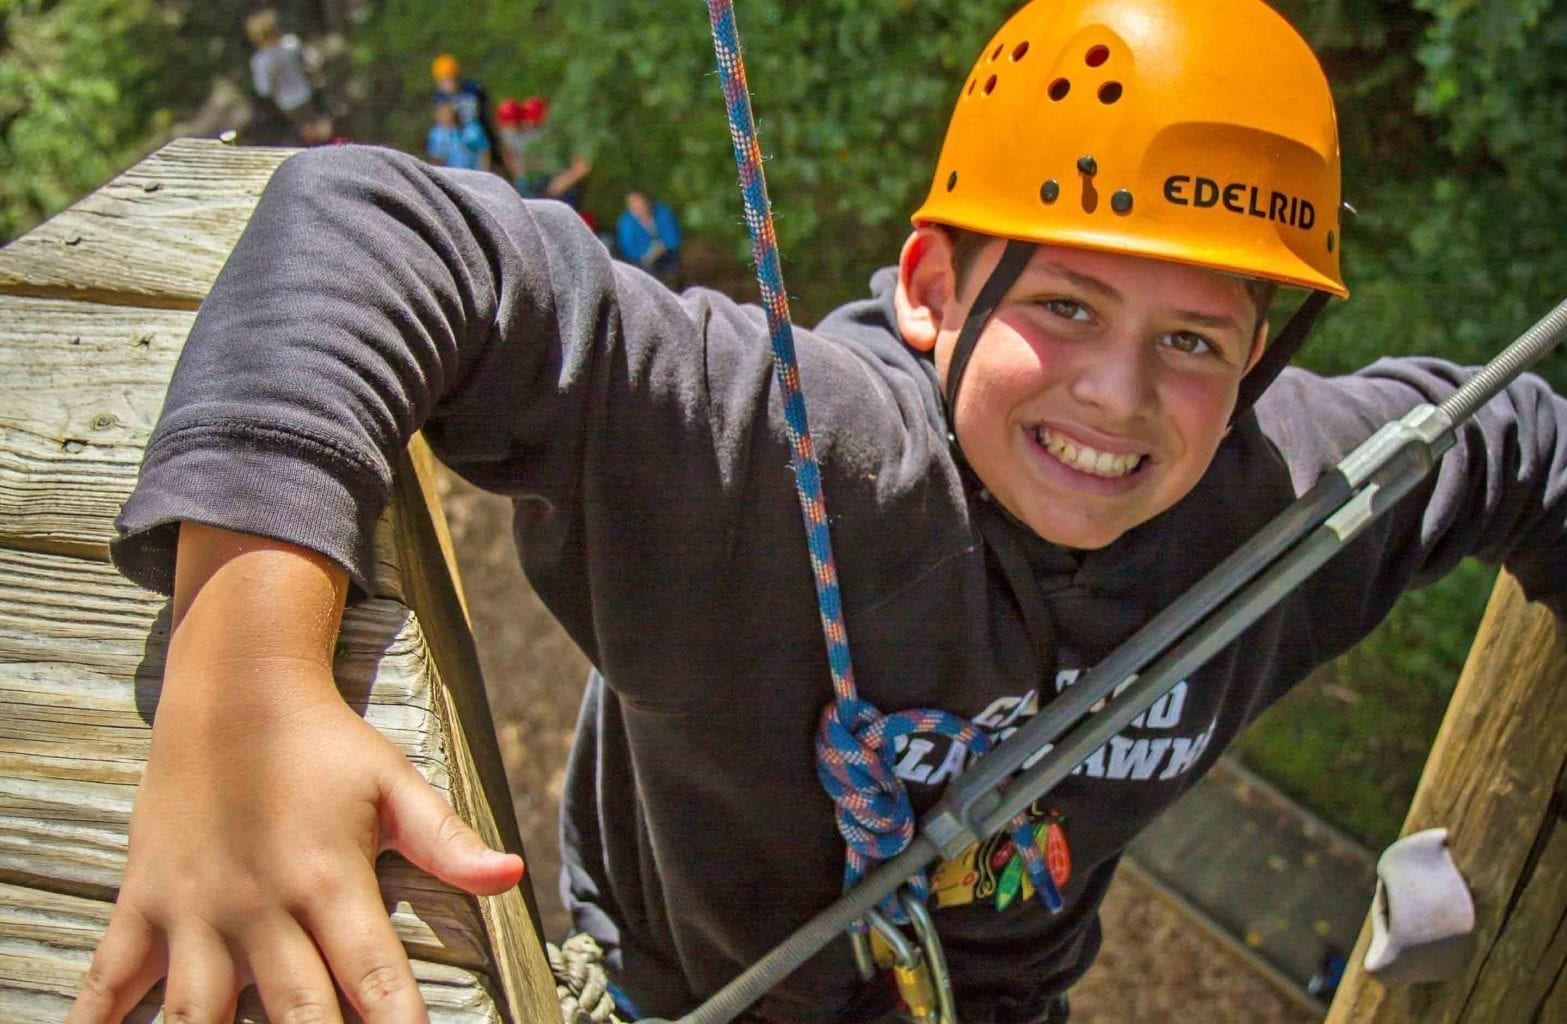 A kid smiles and makes his way up the climbing tower on the Team Challenge Course at ACE Adventure Resort in Southern West Virginia.